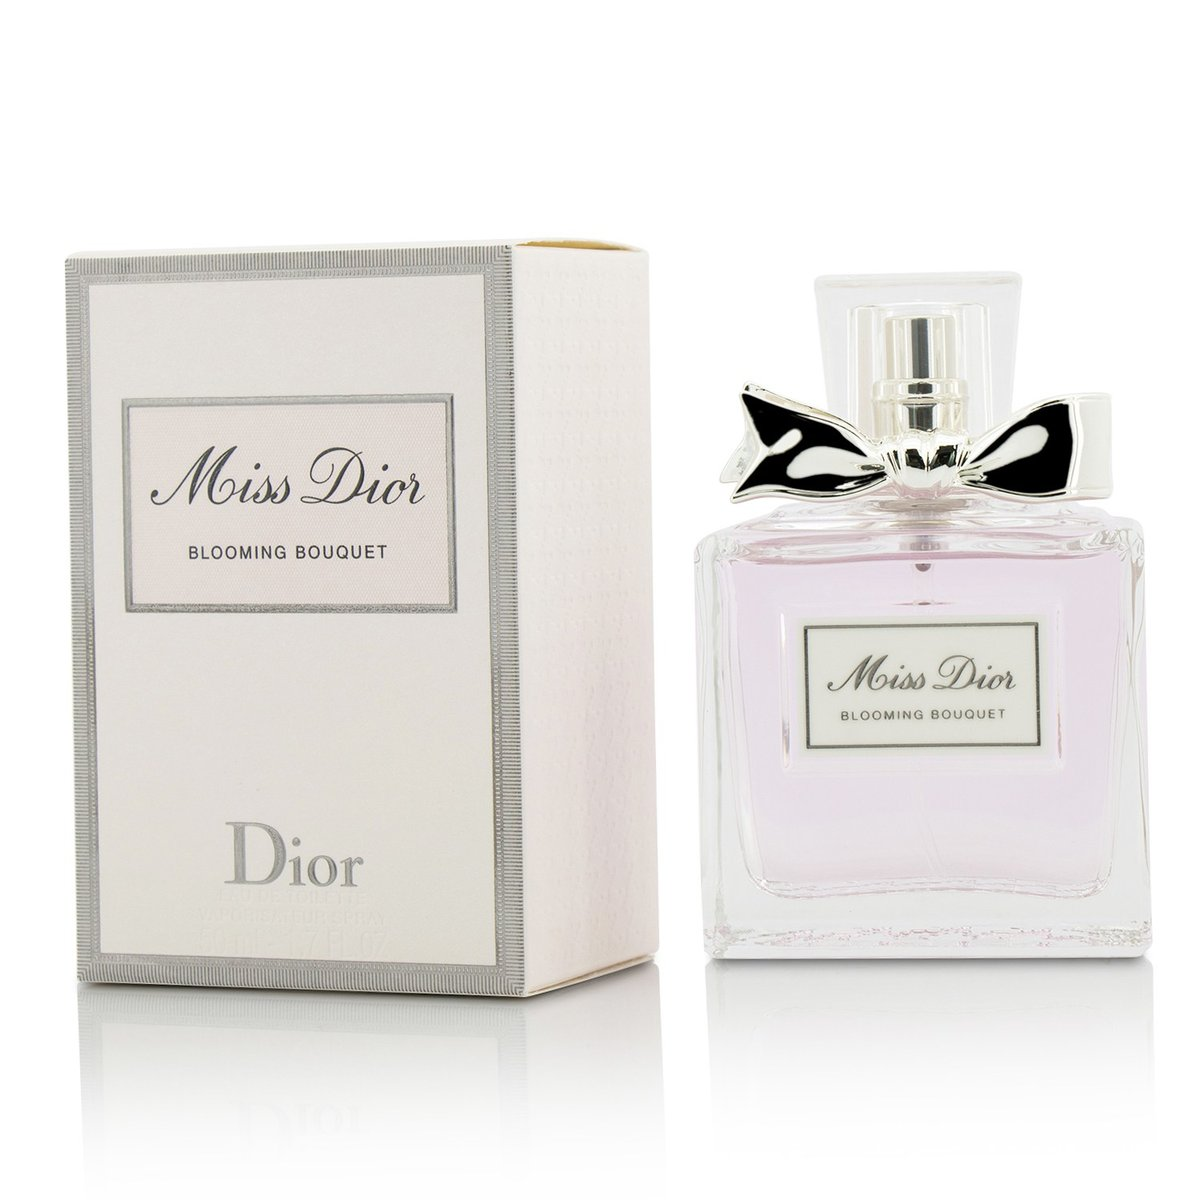 Christian dior miss dior blooming bouquet eau de toilette spray miss dior blooming bouquet eau de toilette spray new scent parallel import izmirmasajfo